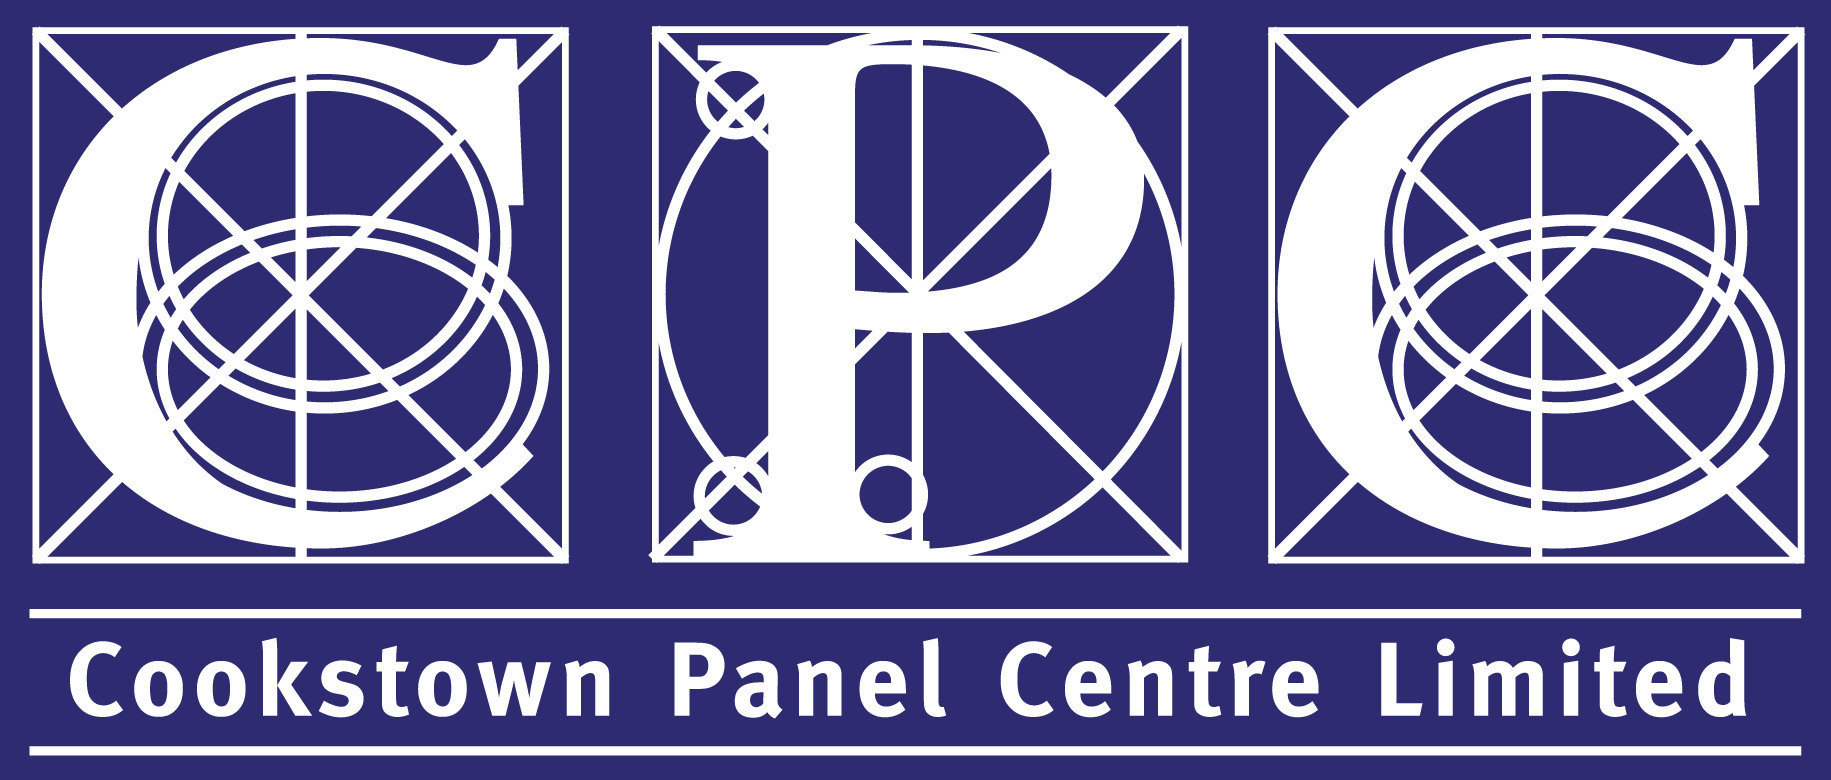 Cookstown Panel Centre Ltd